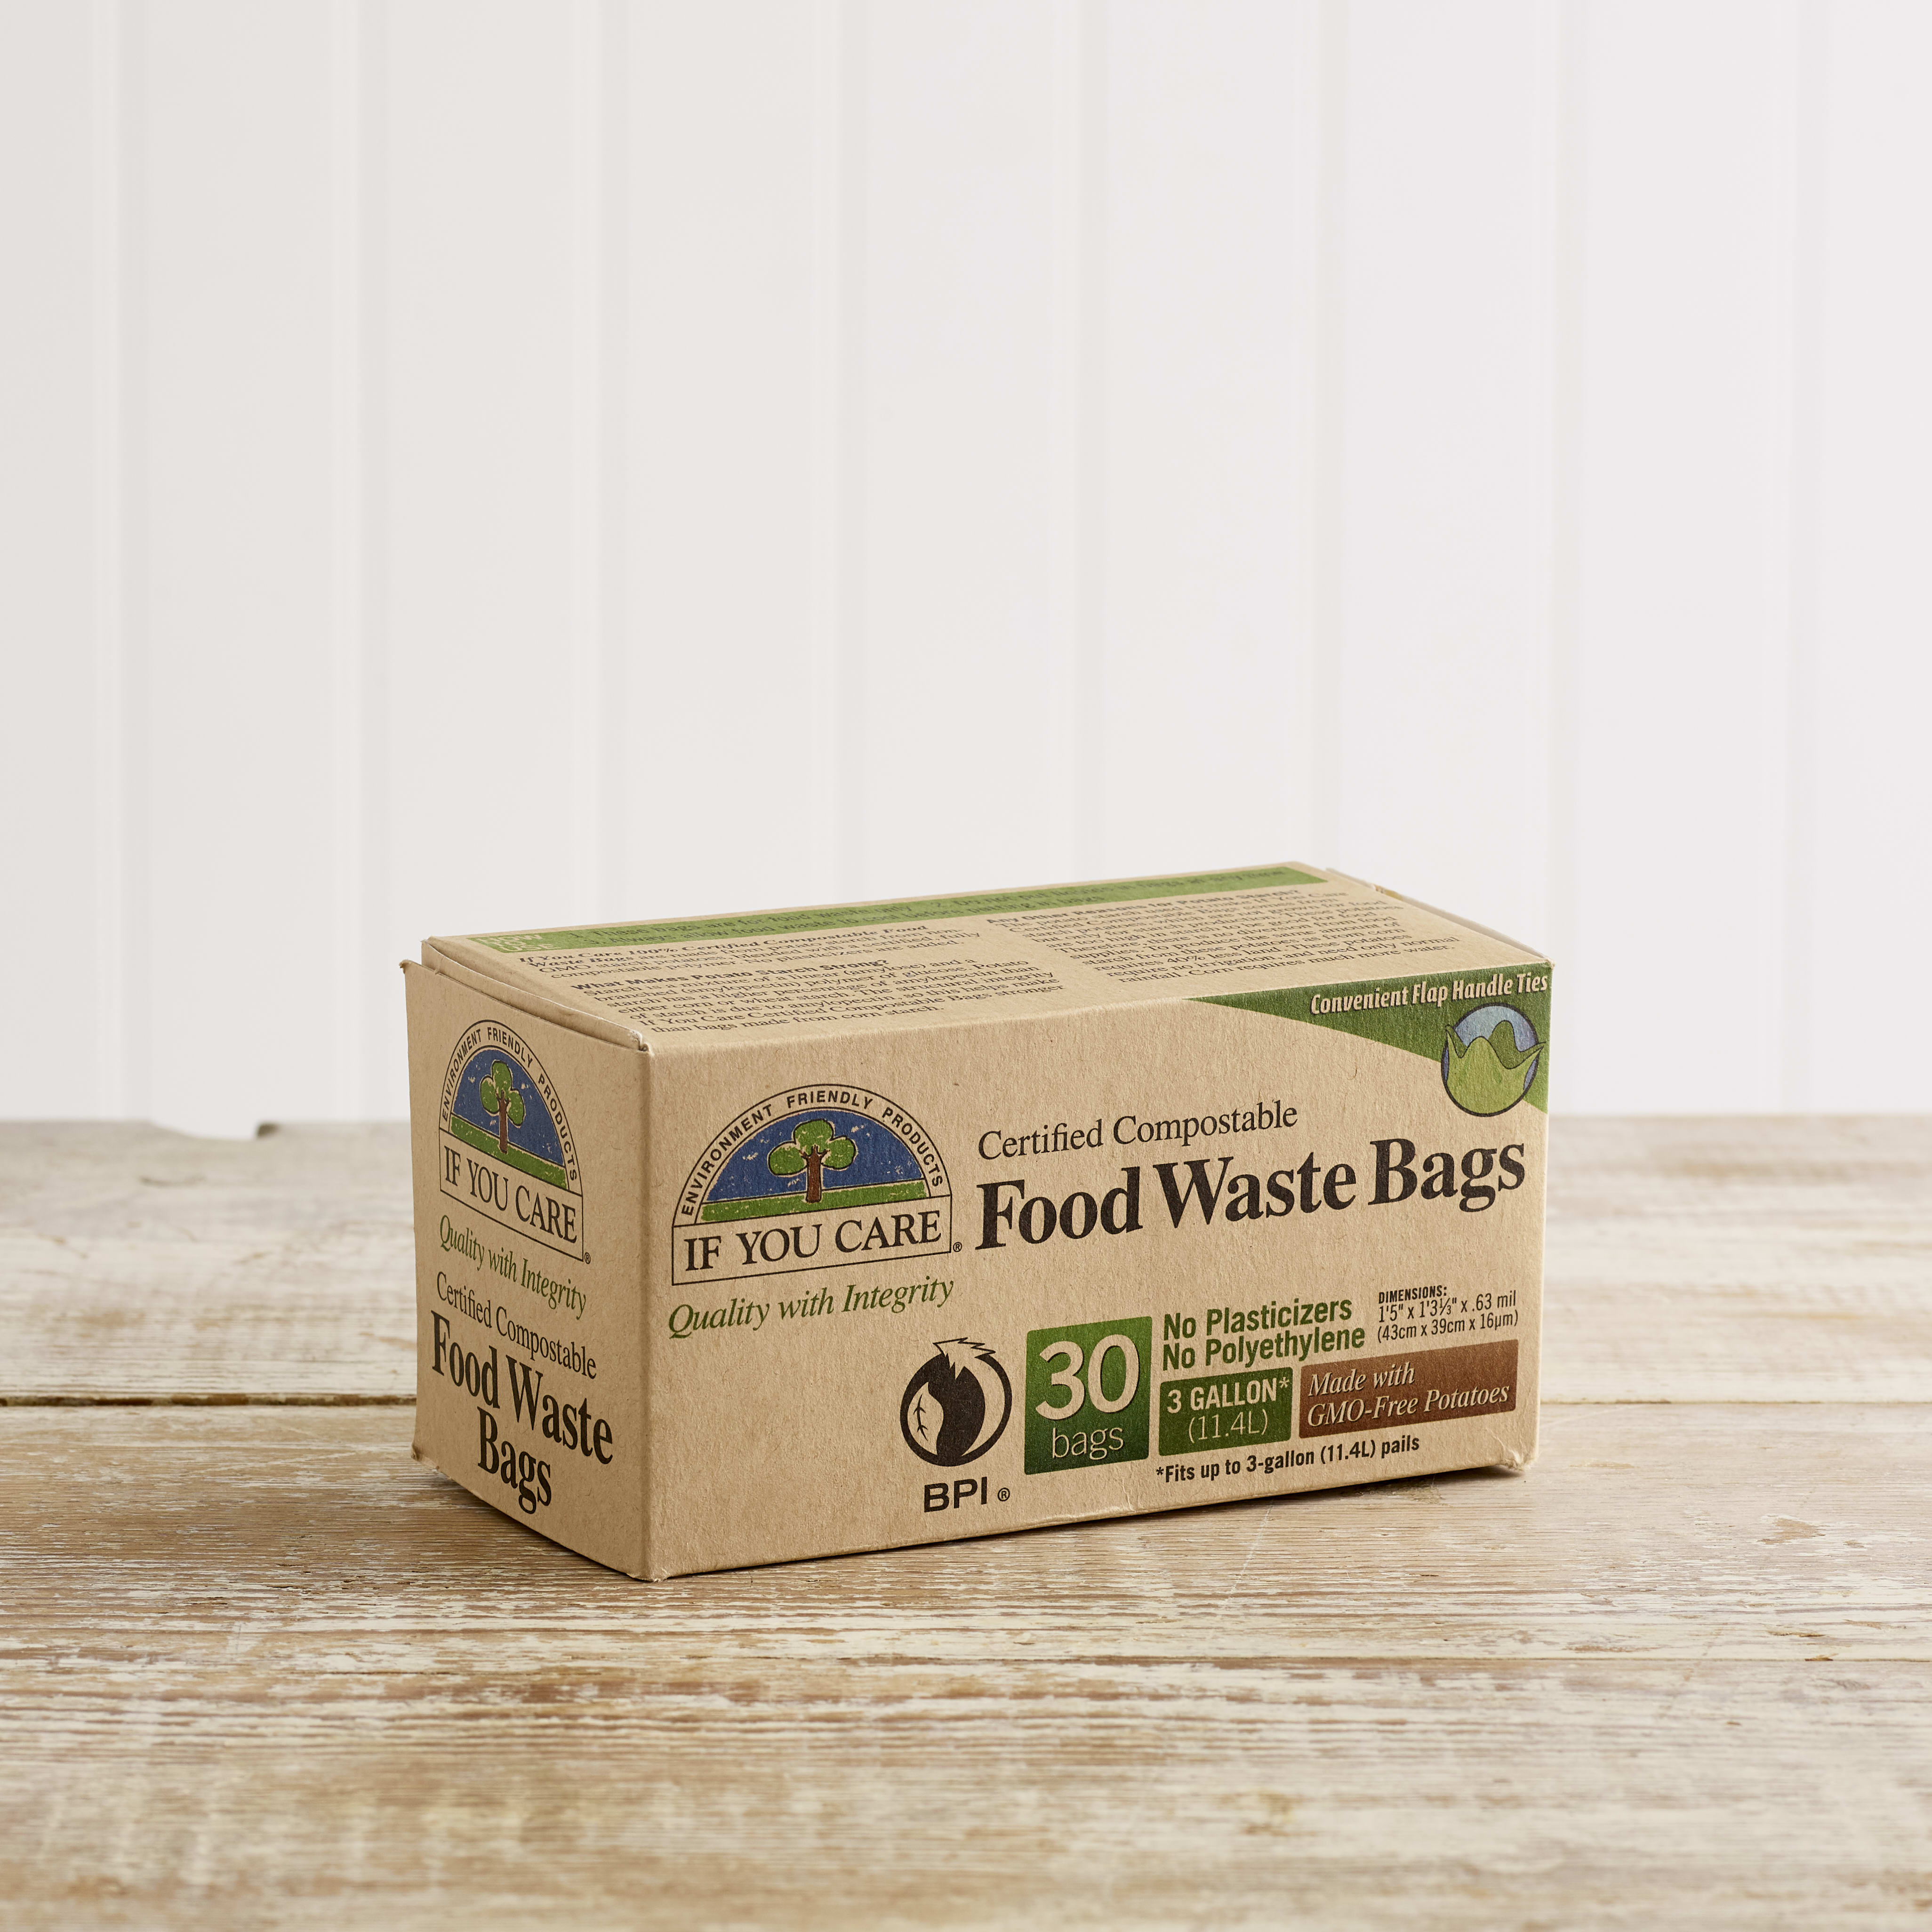 If You Care Compostable Food Waste Bags, 30 pack